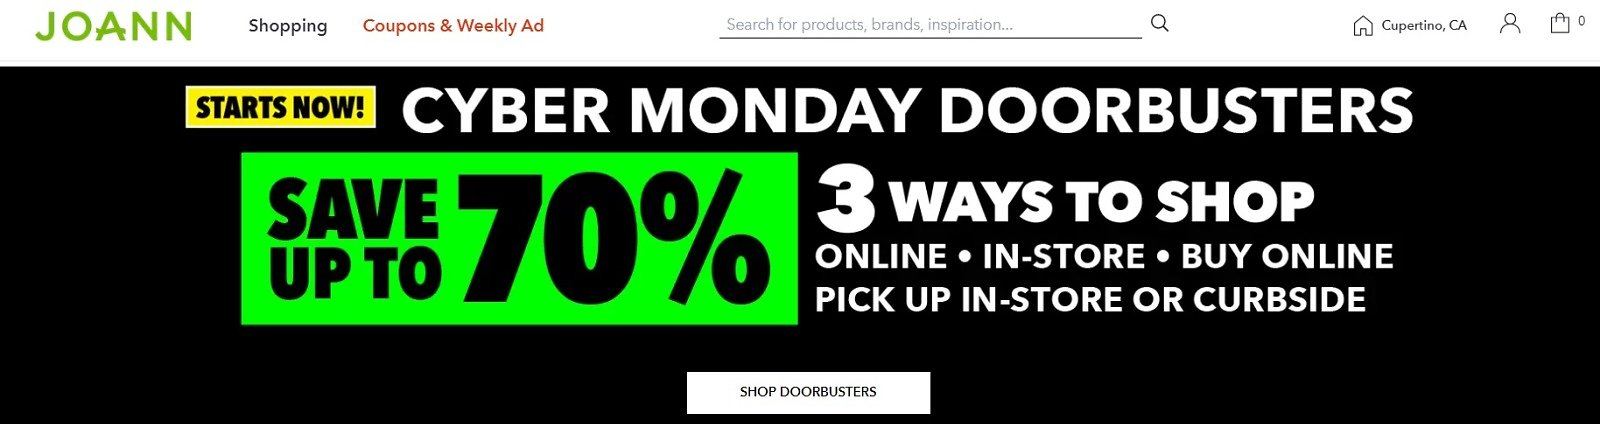 Up to 70% Off Cyber Monday Doorbusters